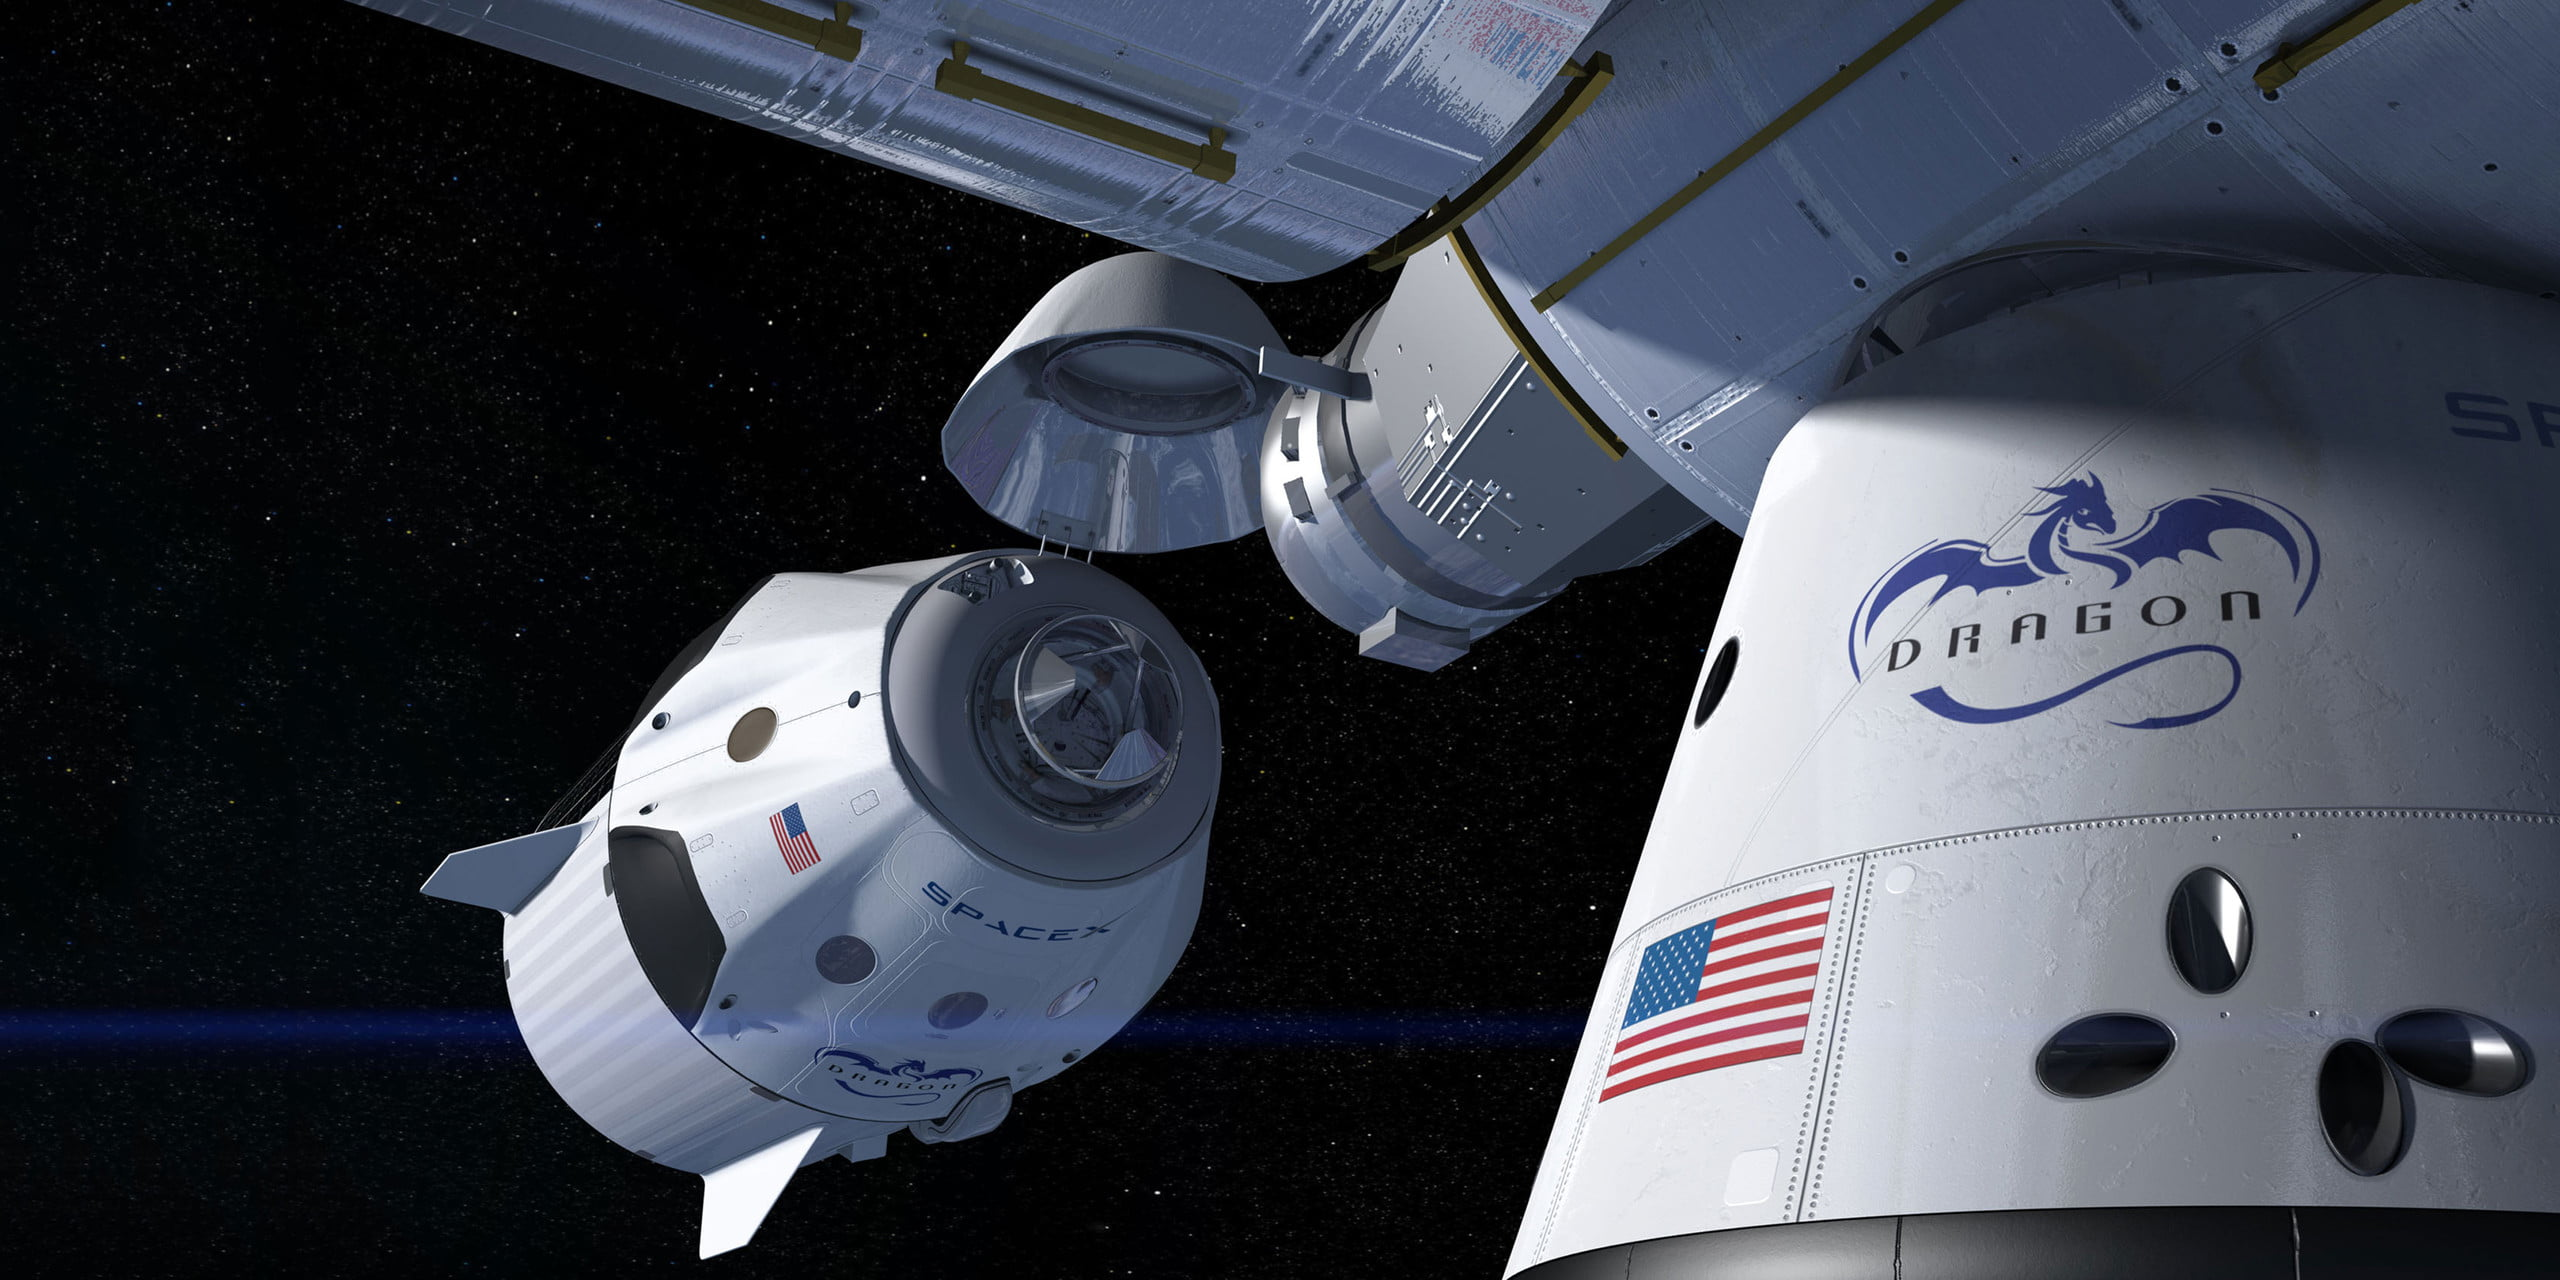 earth dragon from spacex - photo #31